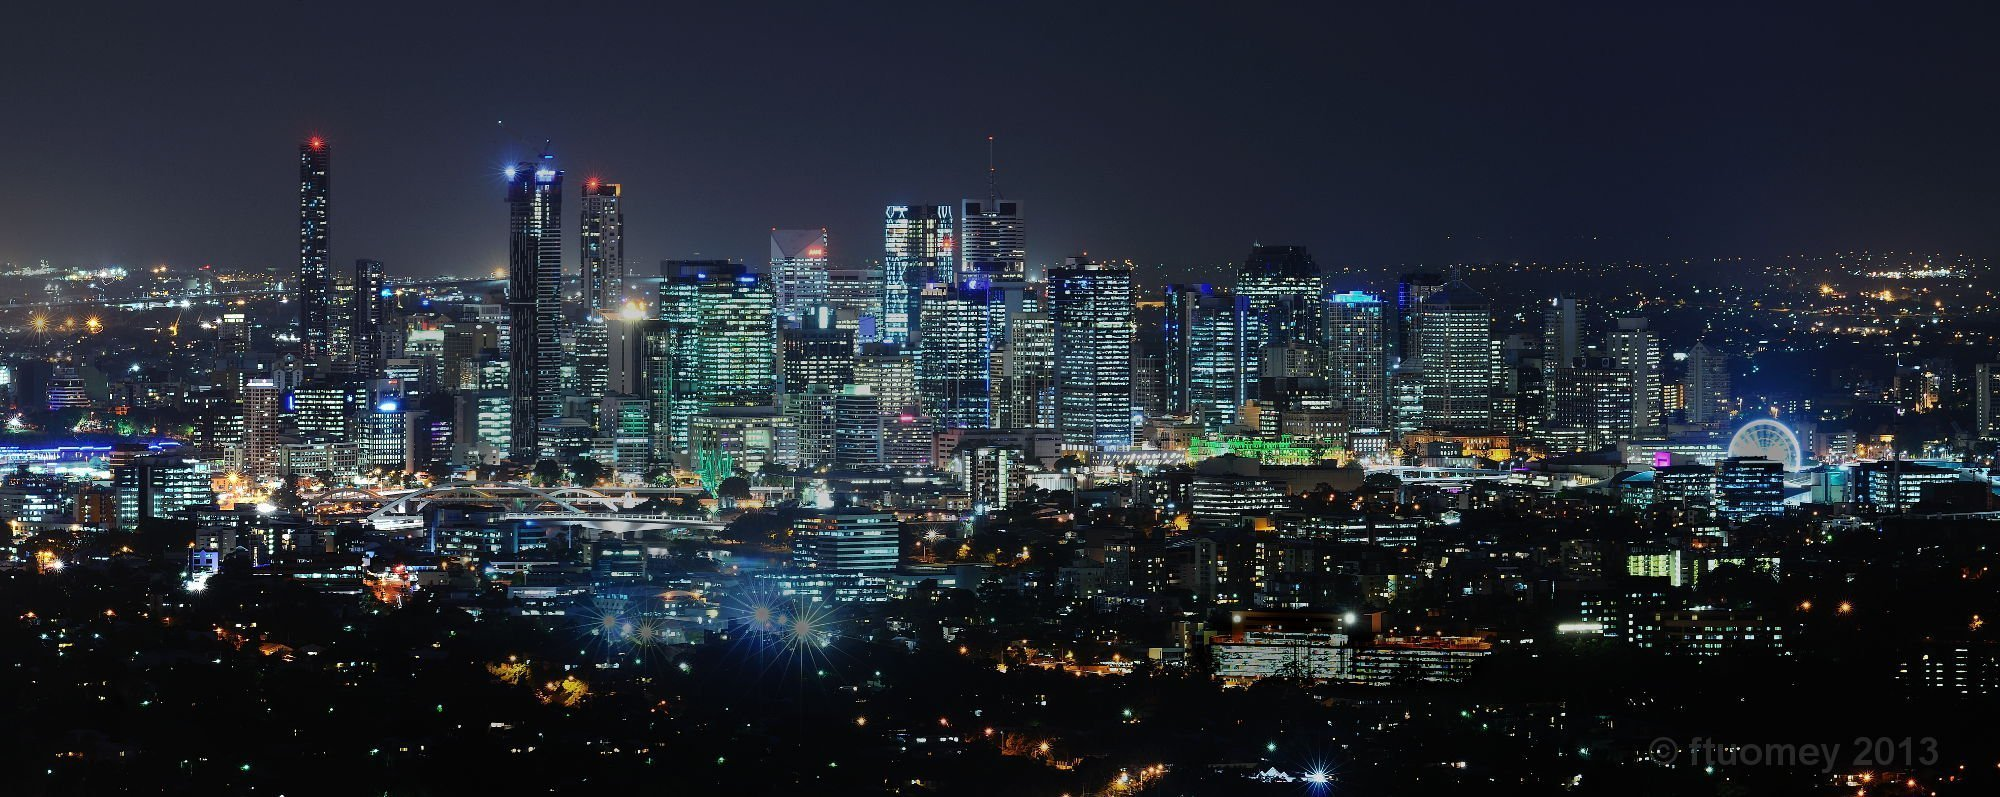 Brisbane Ranks 4th in the world for Foreign Investment Strategy